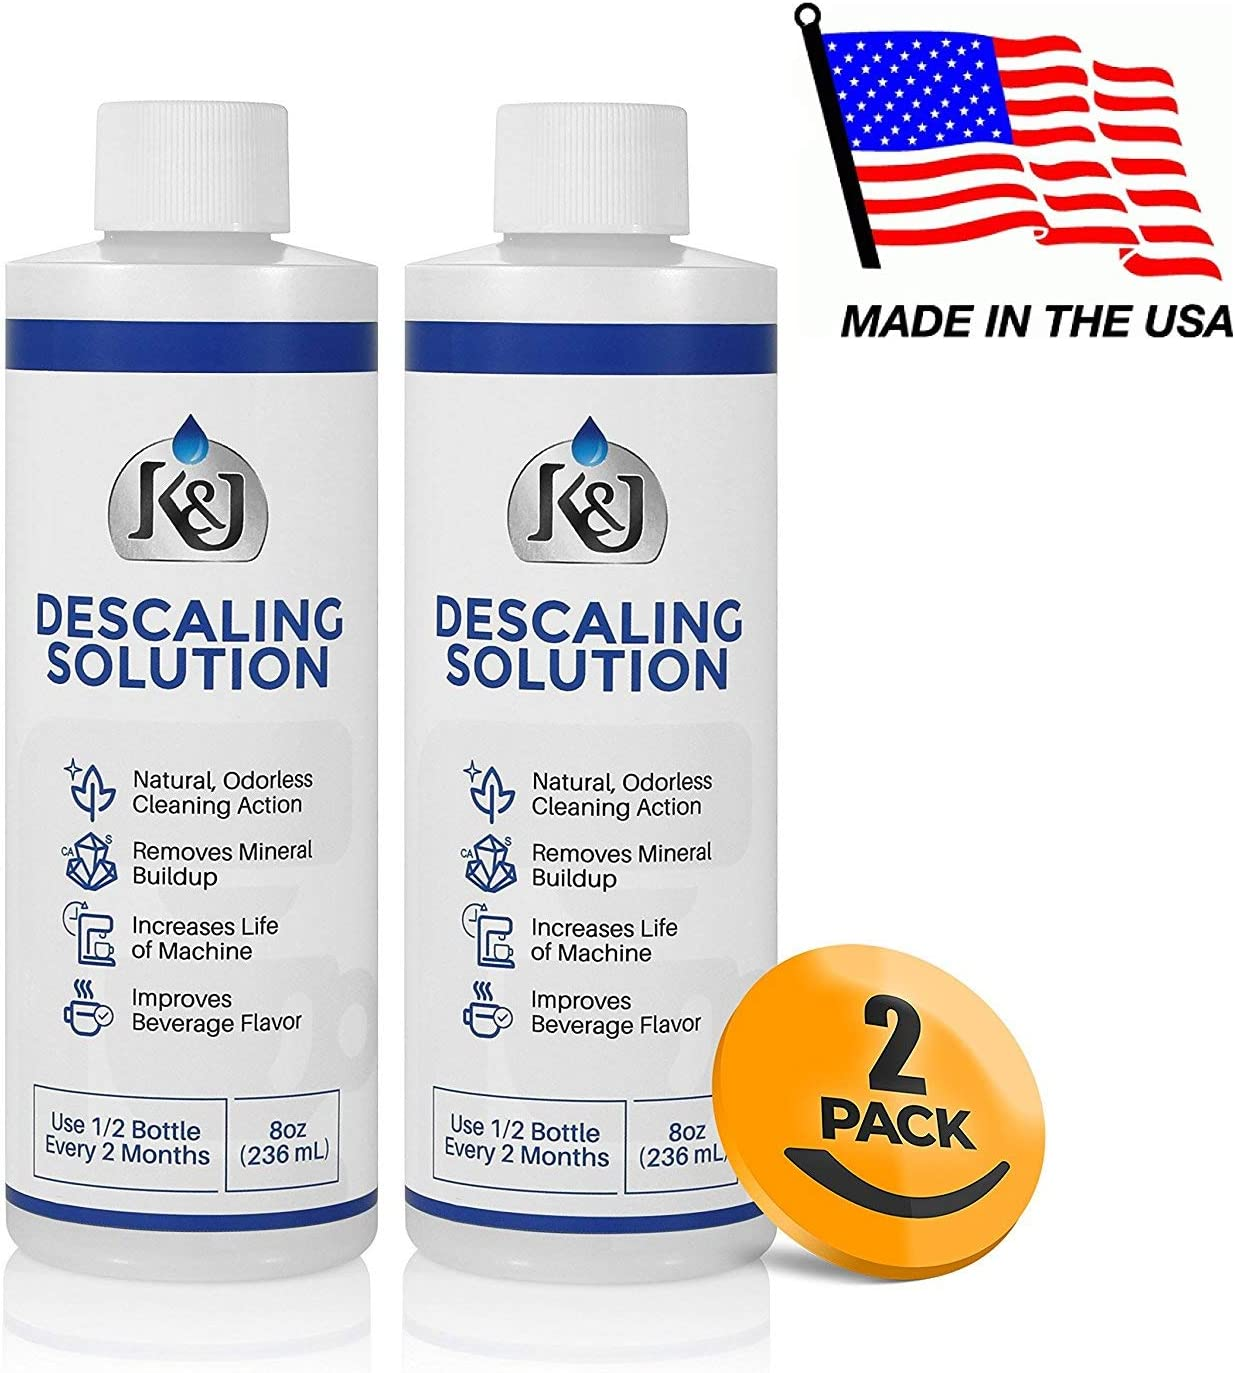 2-Pack Universal Descaling Solution - Descaler for Keurig, Cuisinart, Breville, Kitchenaid, Nespresso, Delonghi, Krups, and all other coffee brewers - by K&J 71DSI0EW-UL